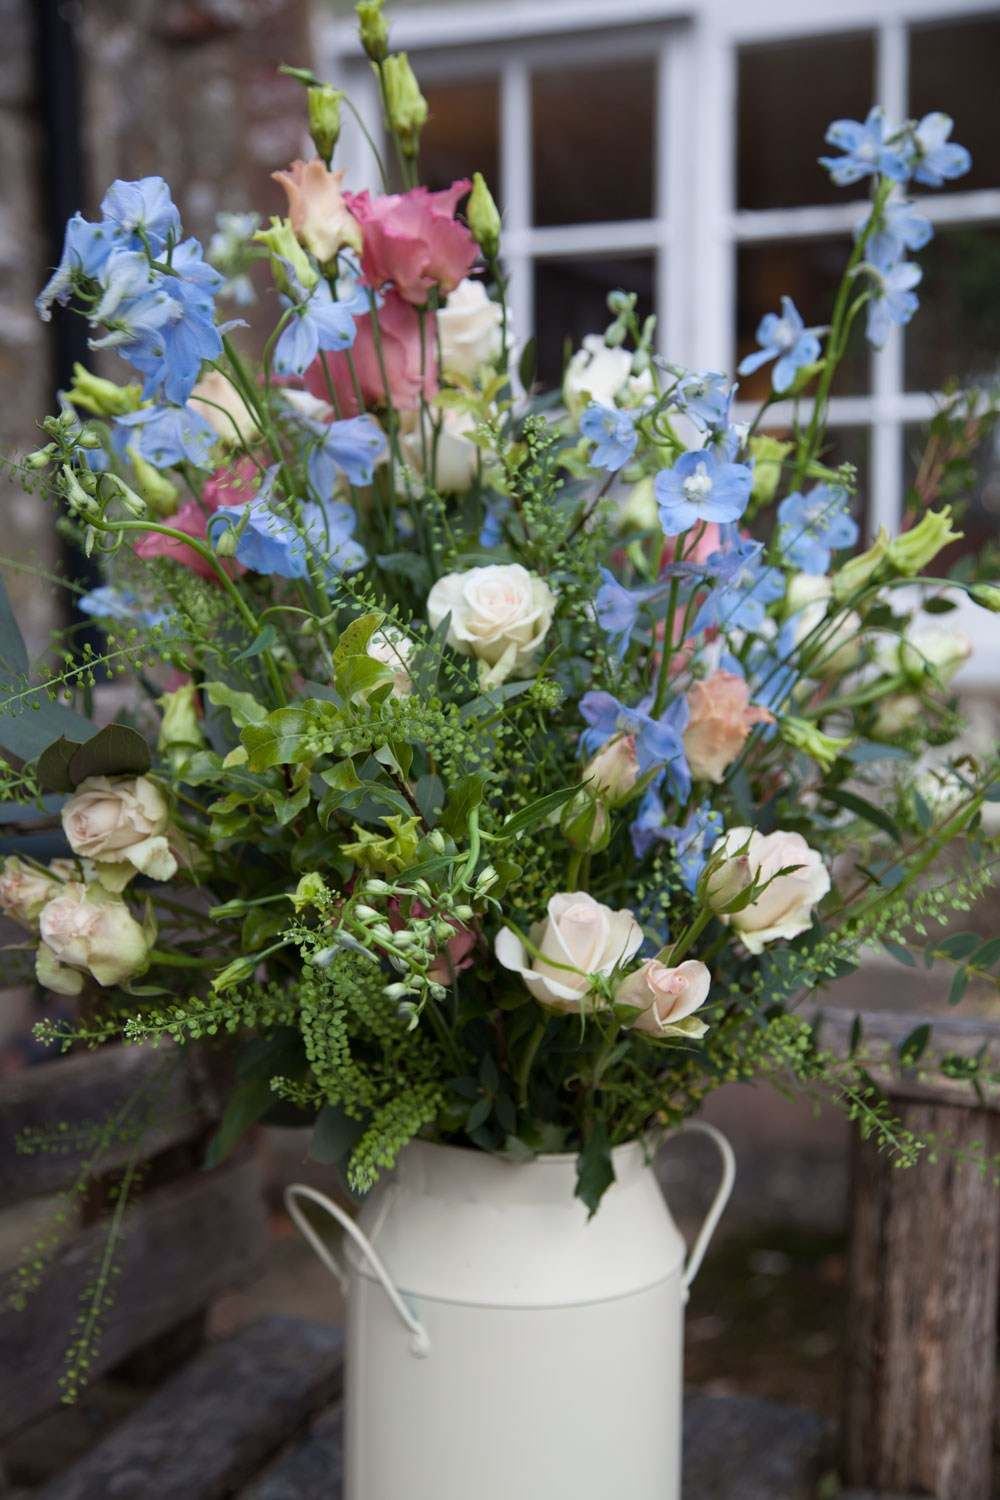 Summer Floral Workshop II with The Floral Artisan: A Vintage Floral Arrangement